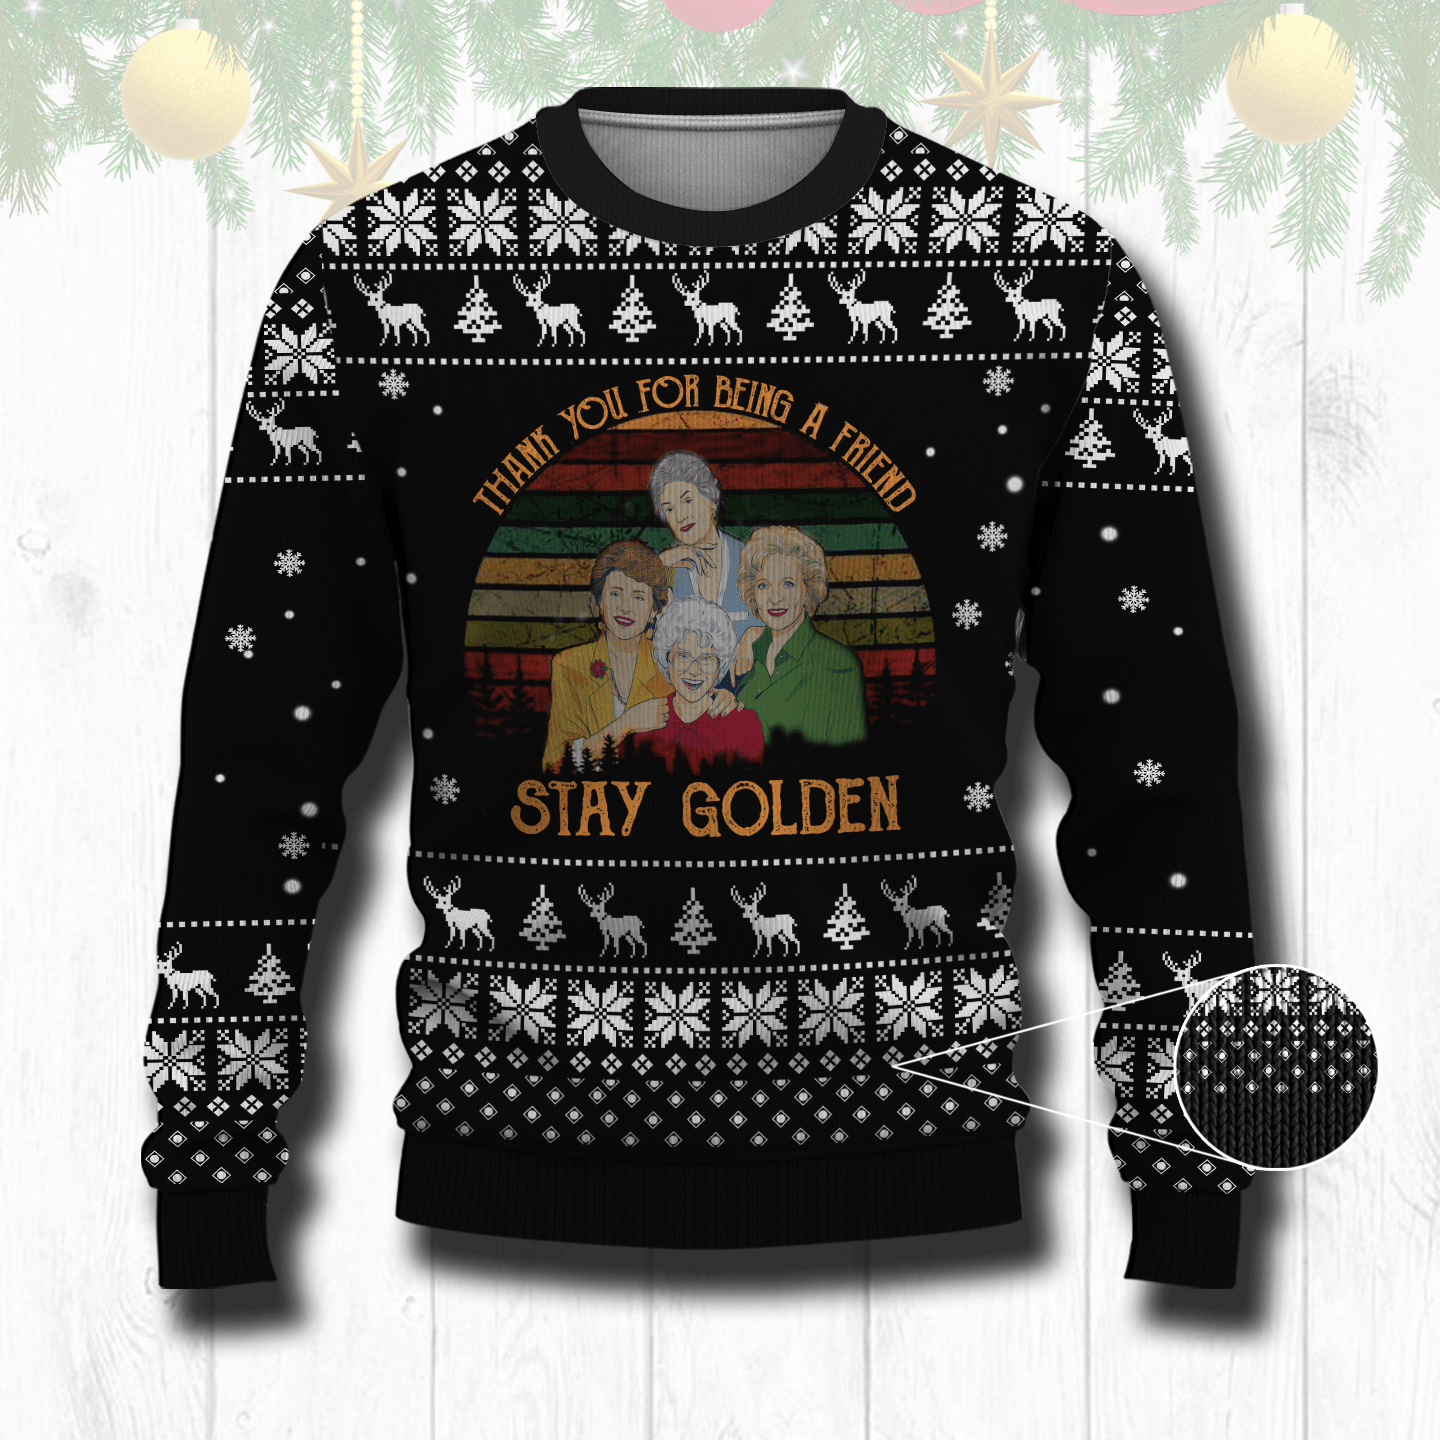 Stay Golden Thank you for being a friend ugly sweater